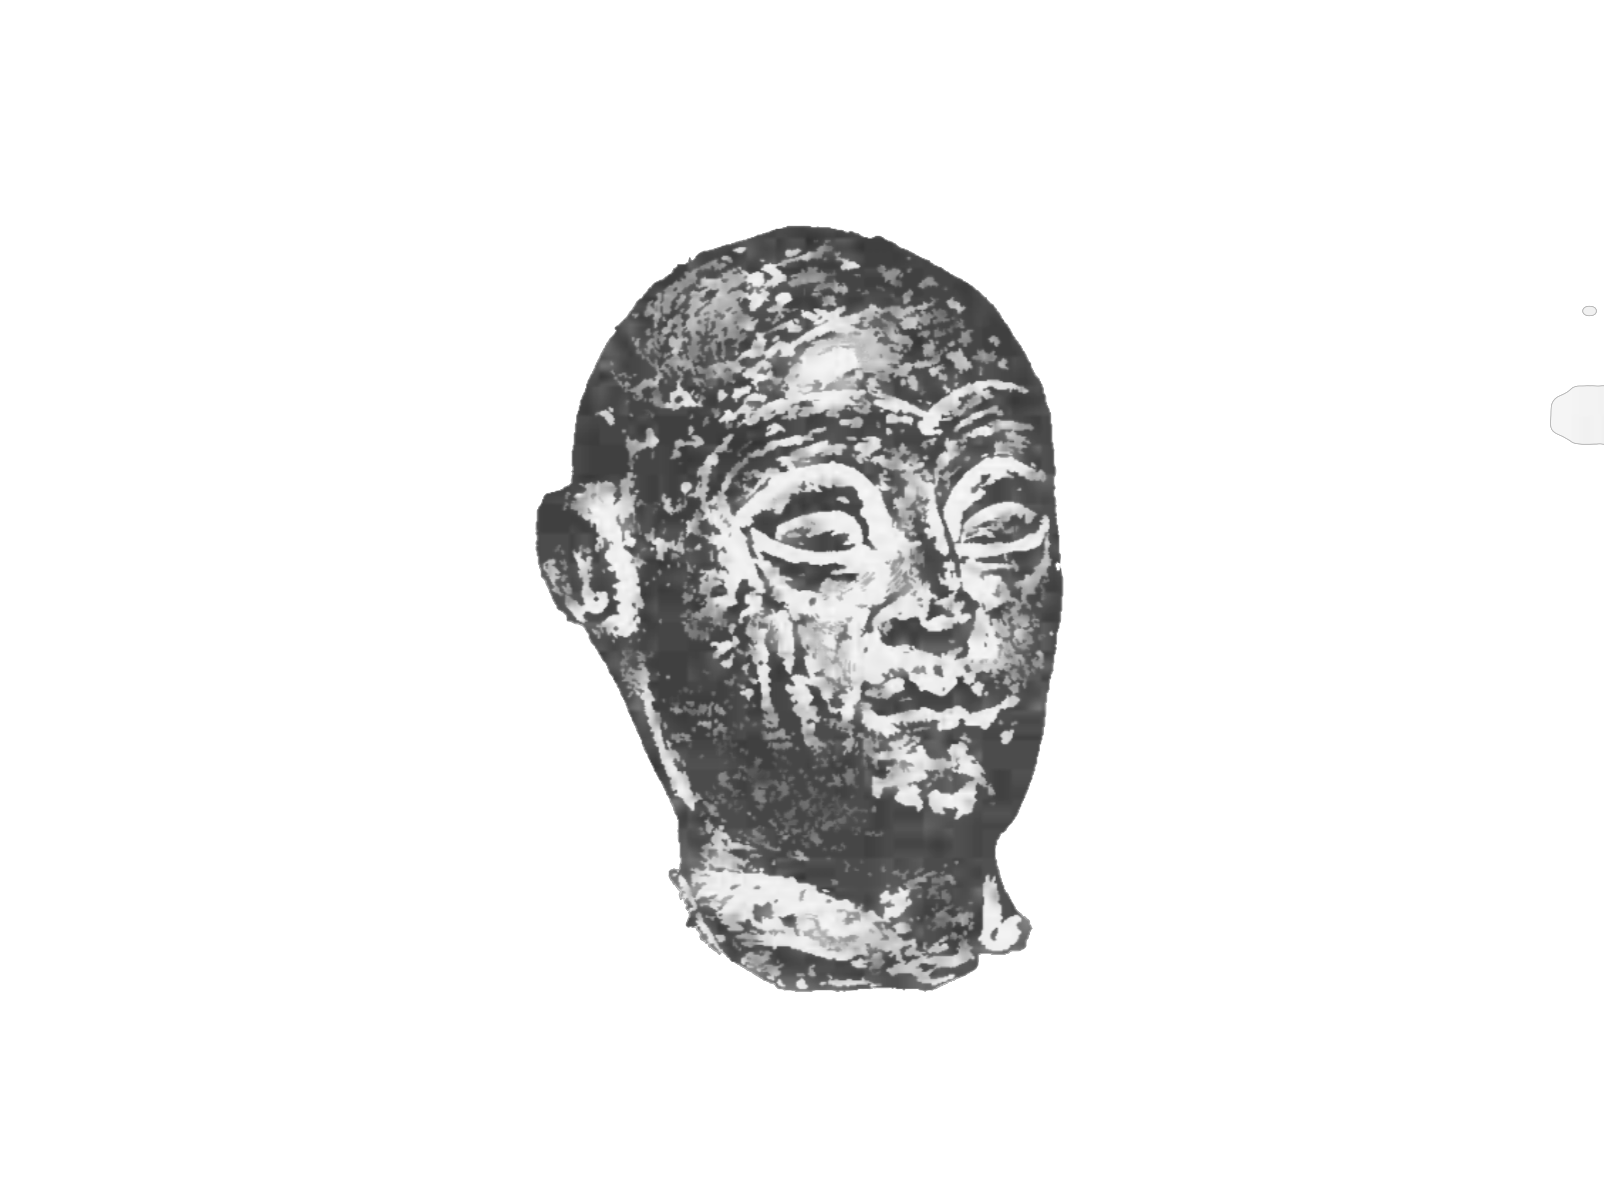 Chaldean_Head of a Man.png